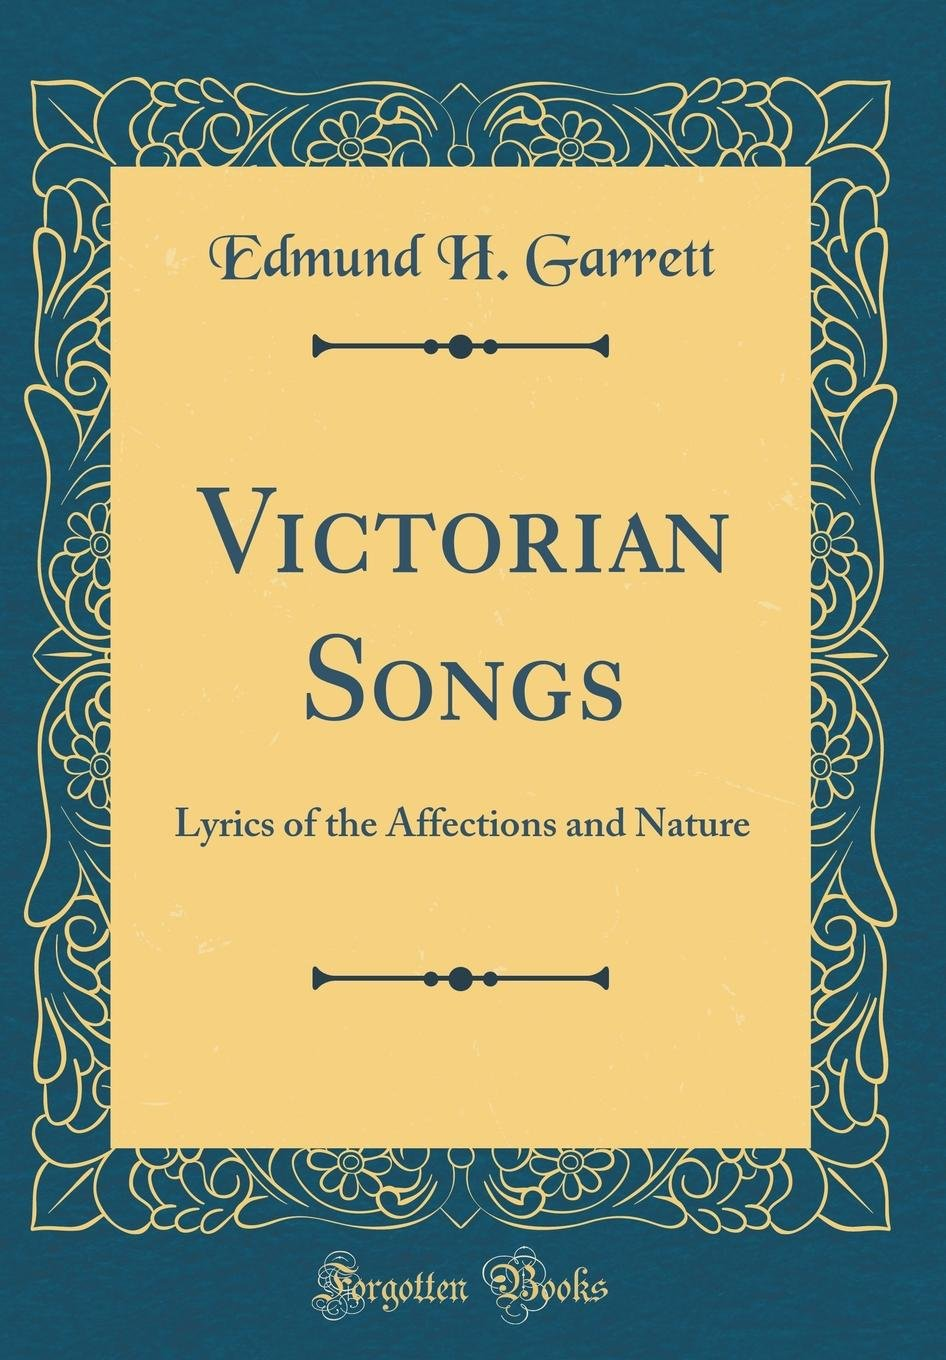 Victorian Songs: Lyrics of the Affections and Nature